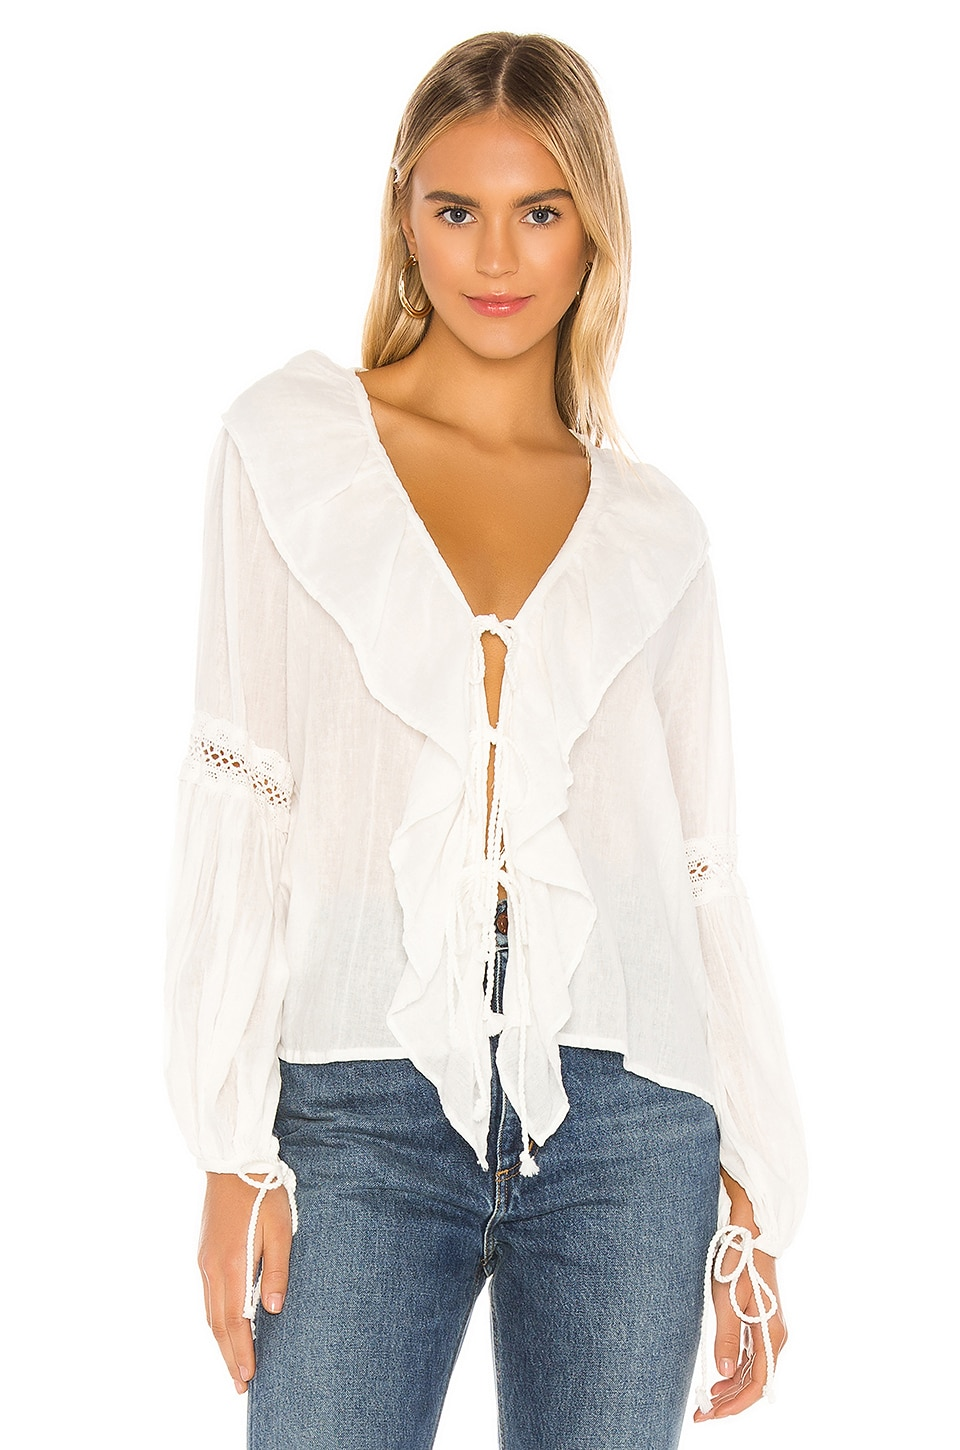 Jen's Pirate Booty Lupe Ruffle Top in White